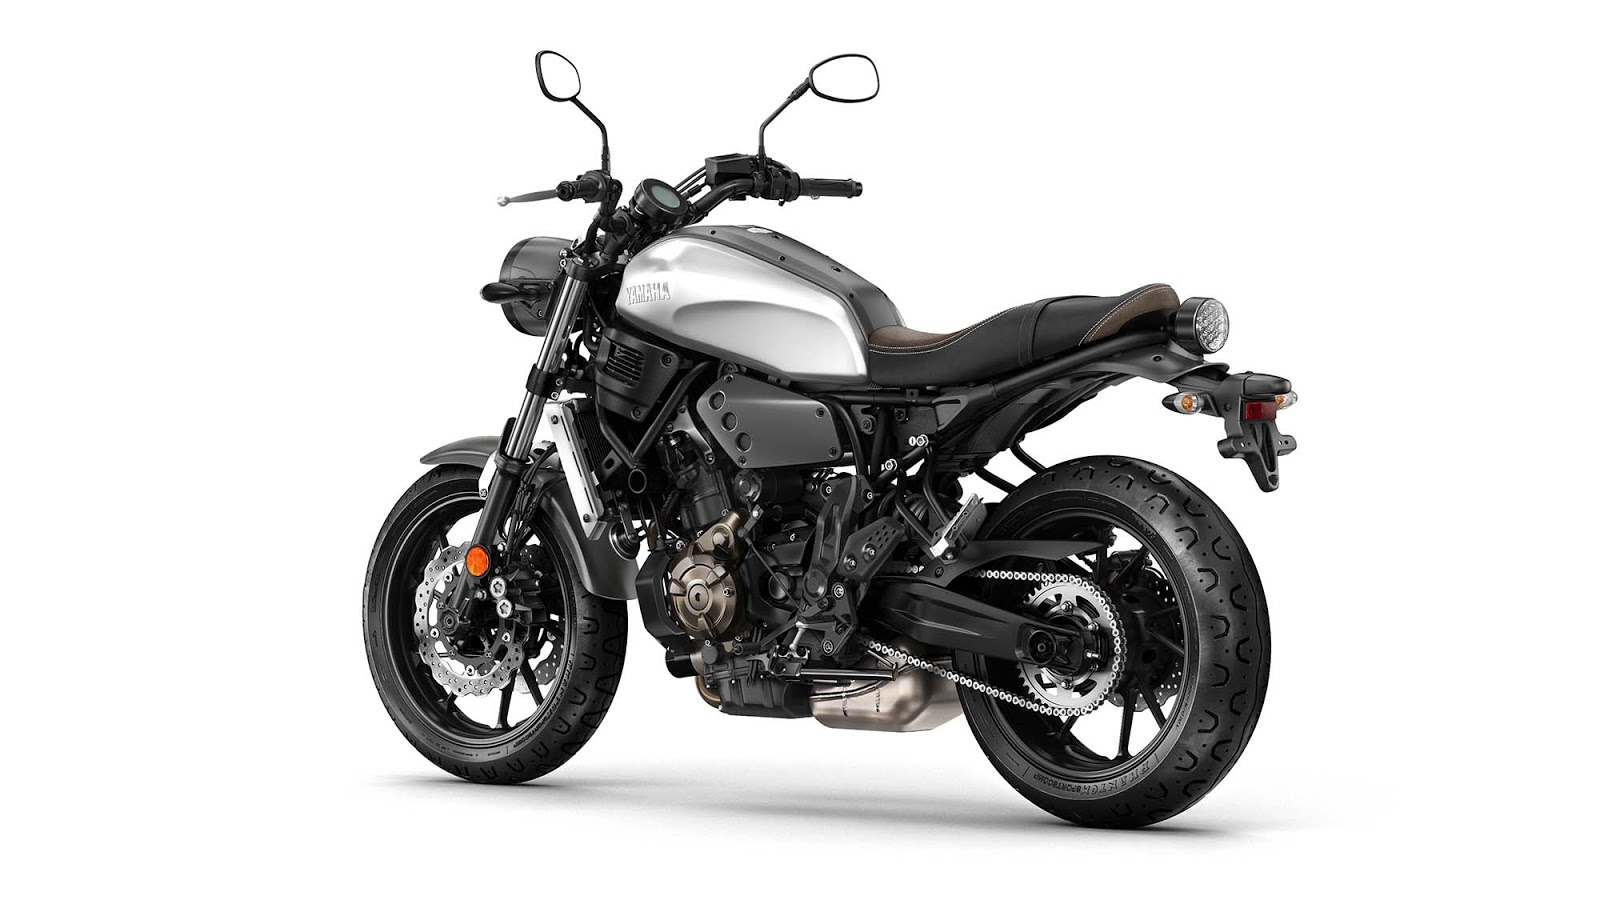 a brotherhood from zilla download yamaha xsr 700 2016 wallpaper. Black Bedroom Furniture Sets. Home Design Ideas